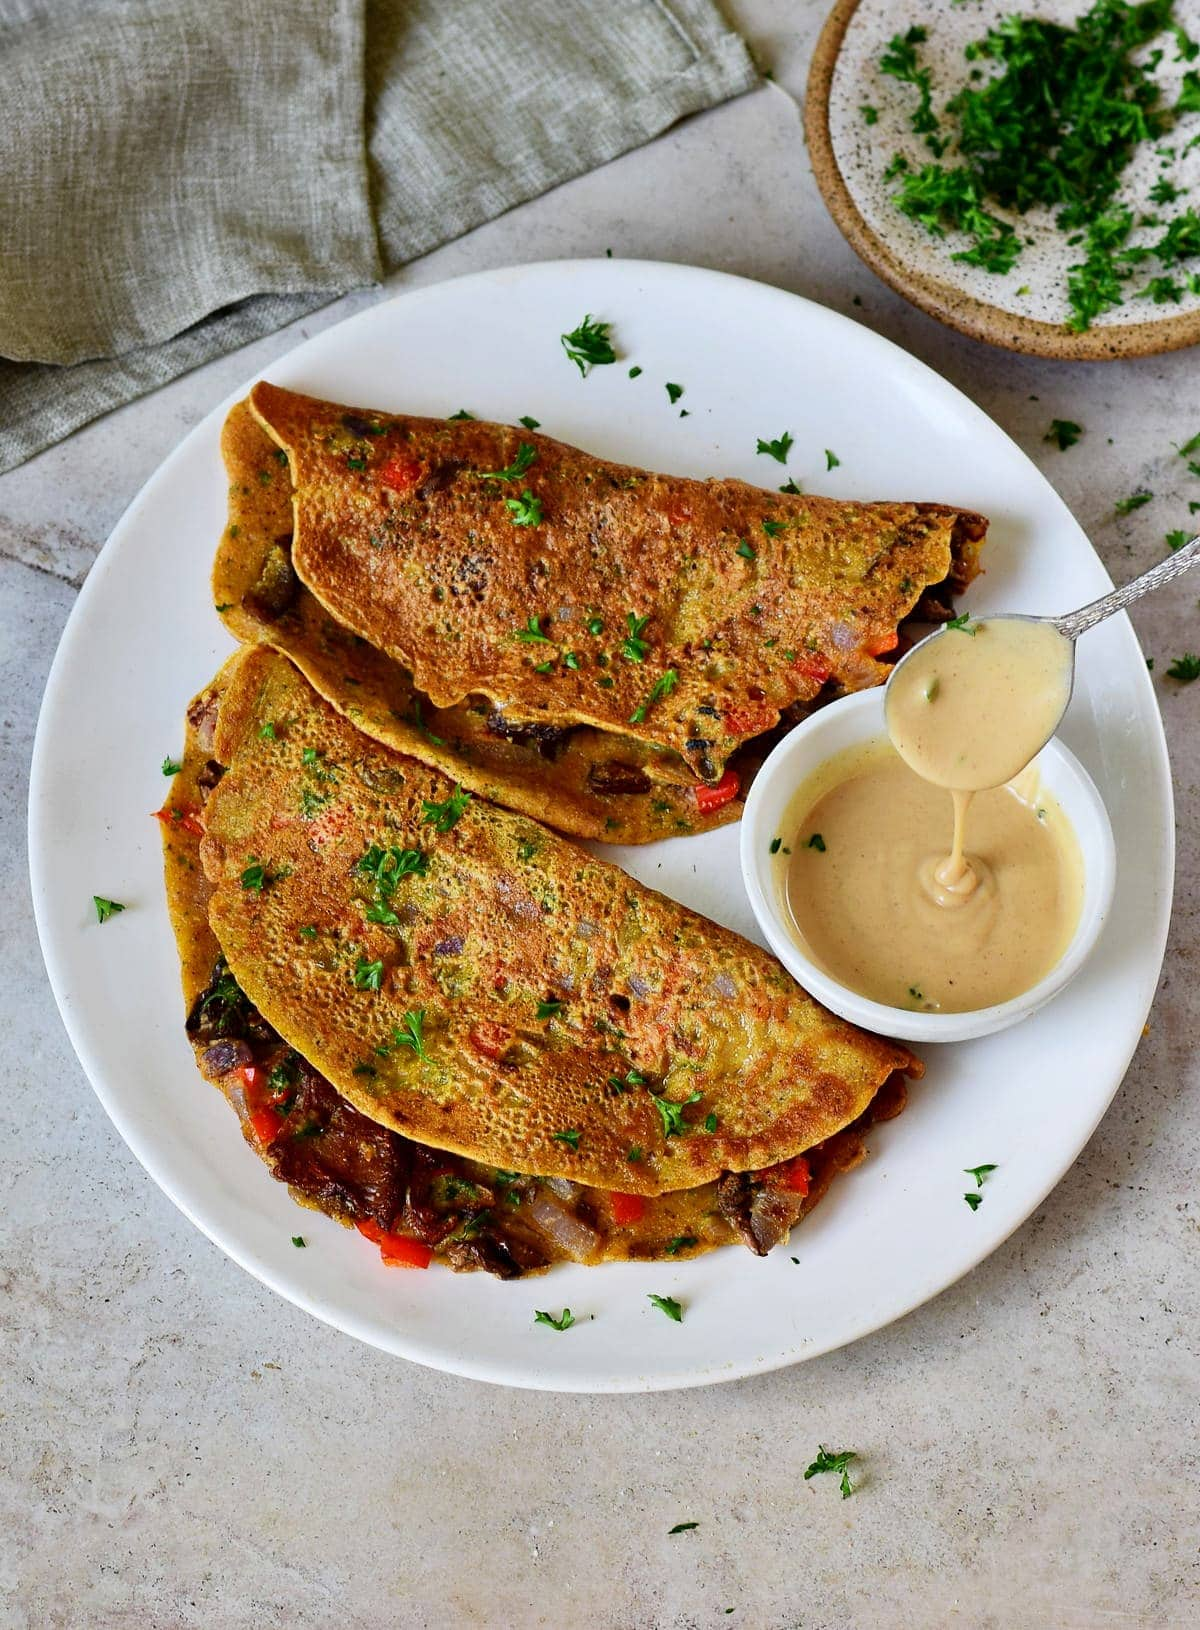 2 vegan omelette on white plate with creamy dressing